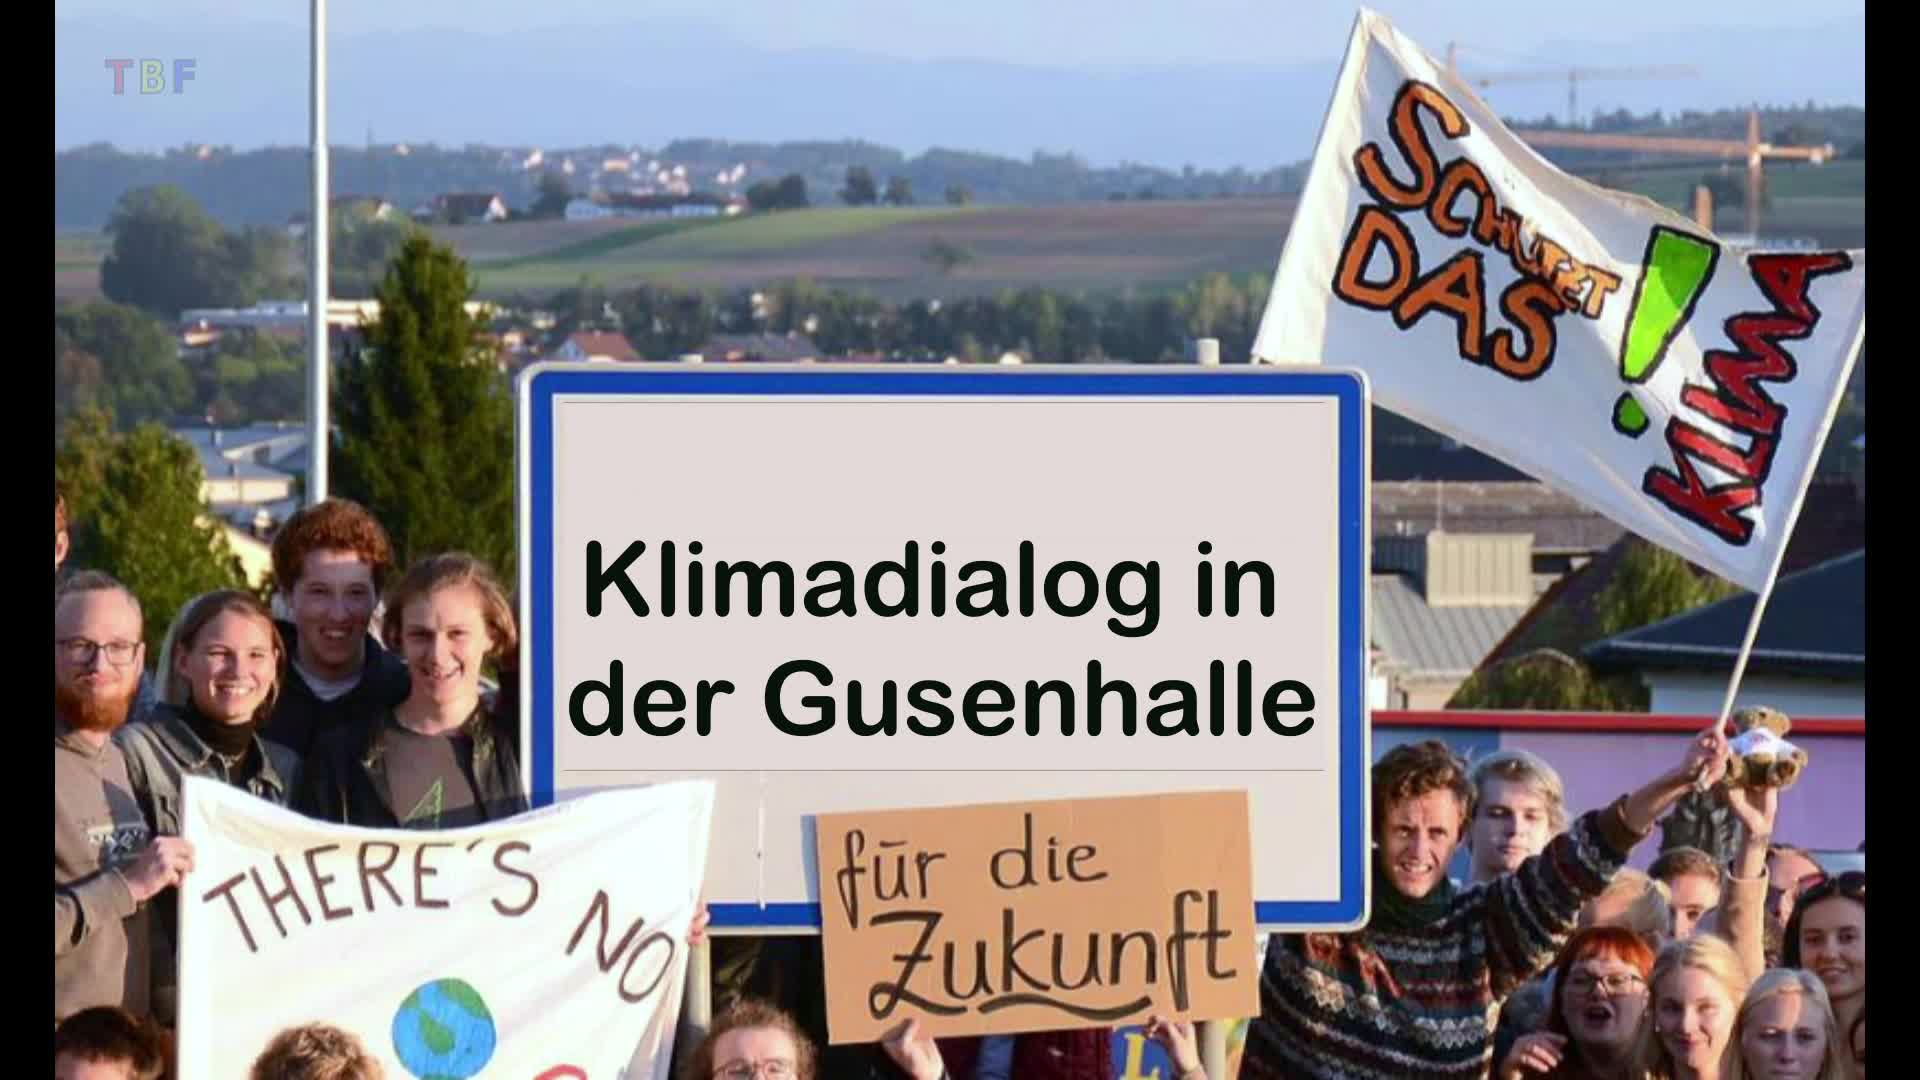 Klima-Dialog-Gallneukirchen